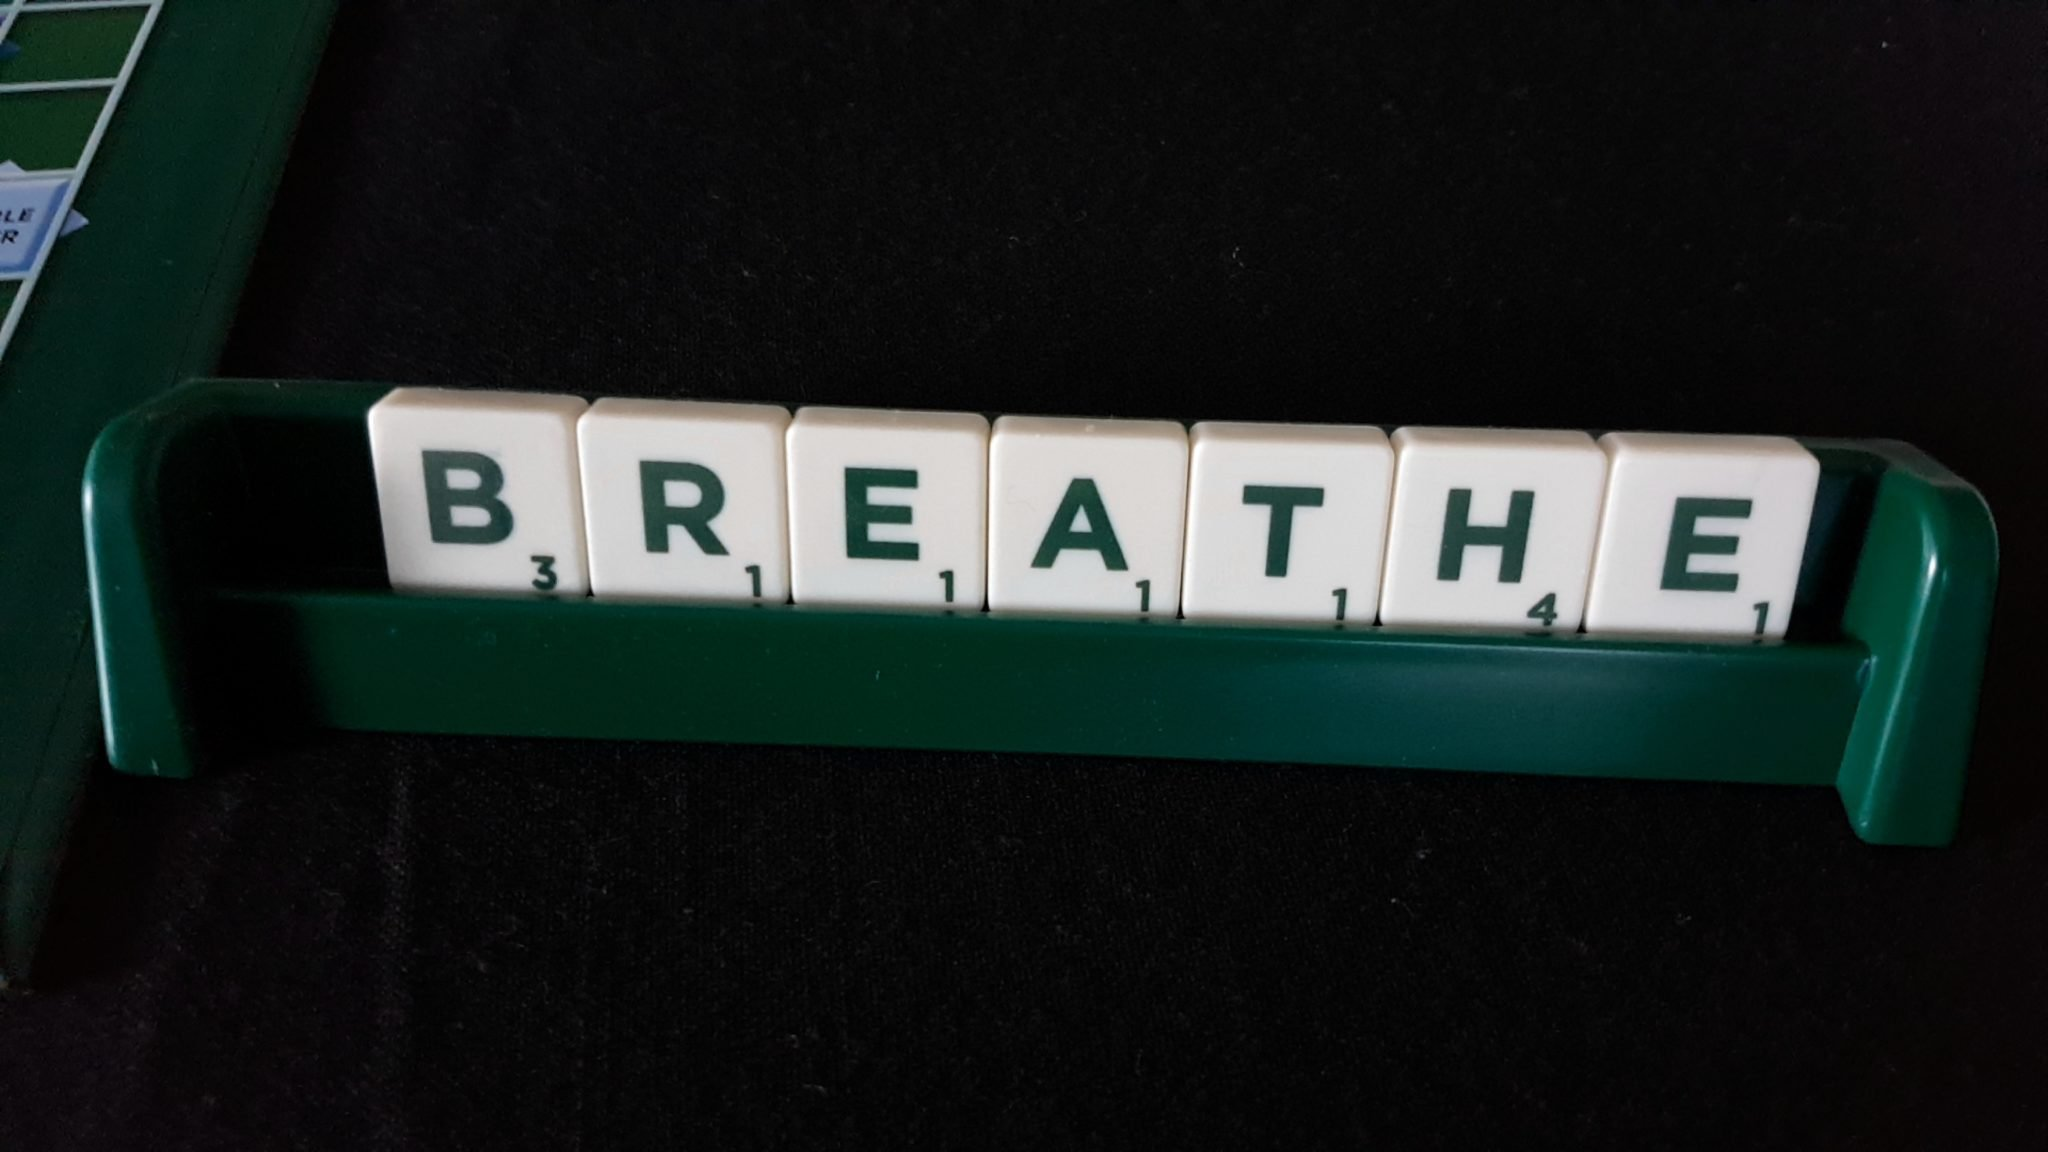 my first scrabble instructions